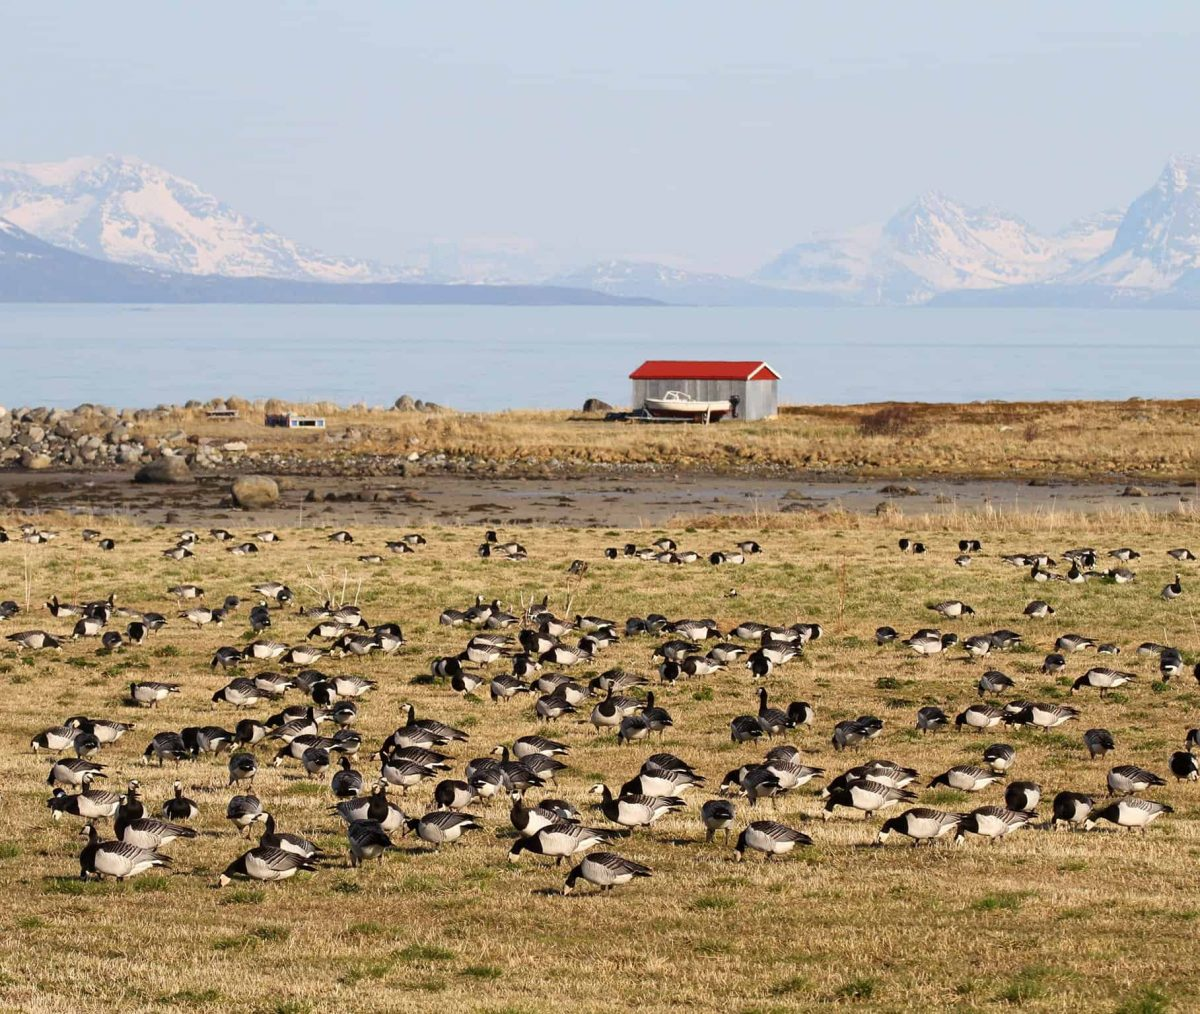 During the past 25 years a rapidly increasing proportion of barnacle geese switched to Vesterålen. See National News story NNgeese.Geese have changed their migration paths on leaving Britain due to climate change, reveals a long-term study. Researchers discovered that barnacle geese have shifted their migratory route within the last 25 years. The team concluded that individual geese have decided to change to the new route, and that other geese now learn the new habit from each other. The study, published in the journal Global Change Biology, is among the first to provide hard evidence that wild animals are inventing new traditions to cope with climate change.